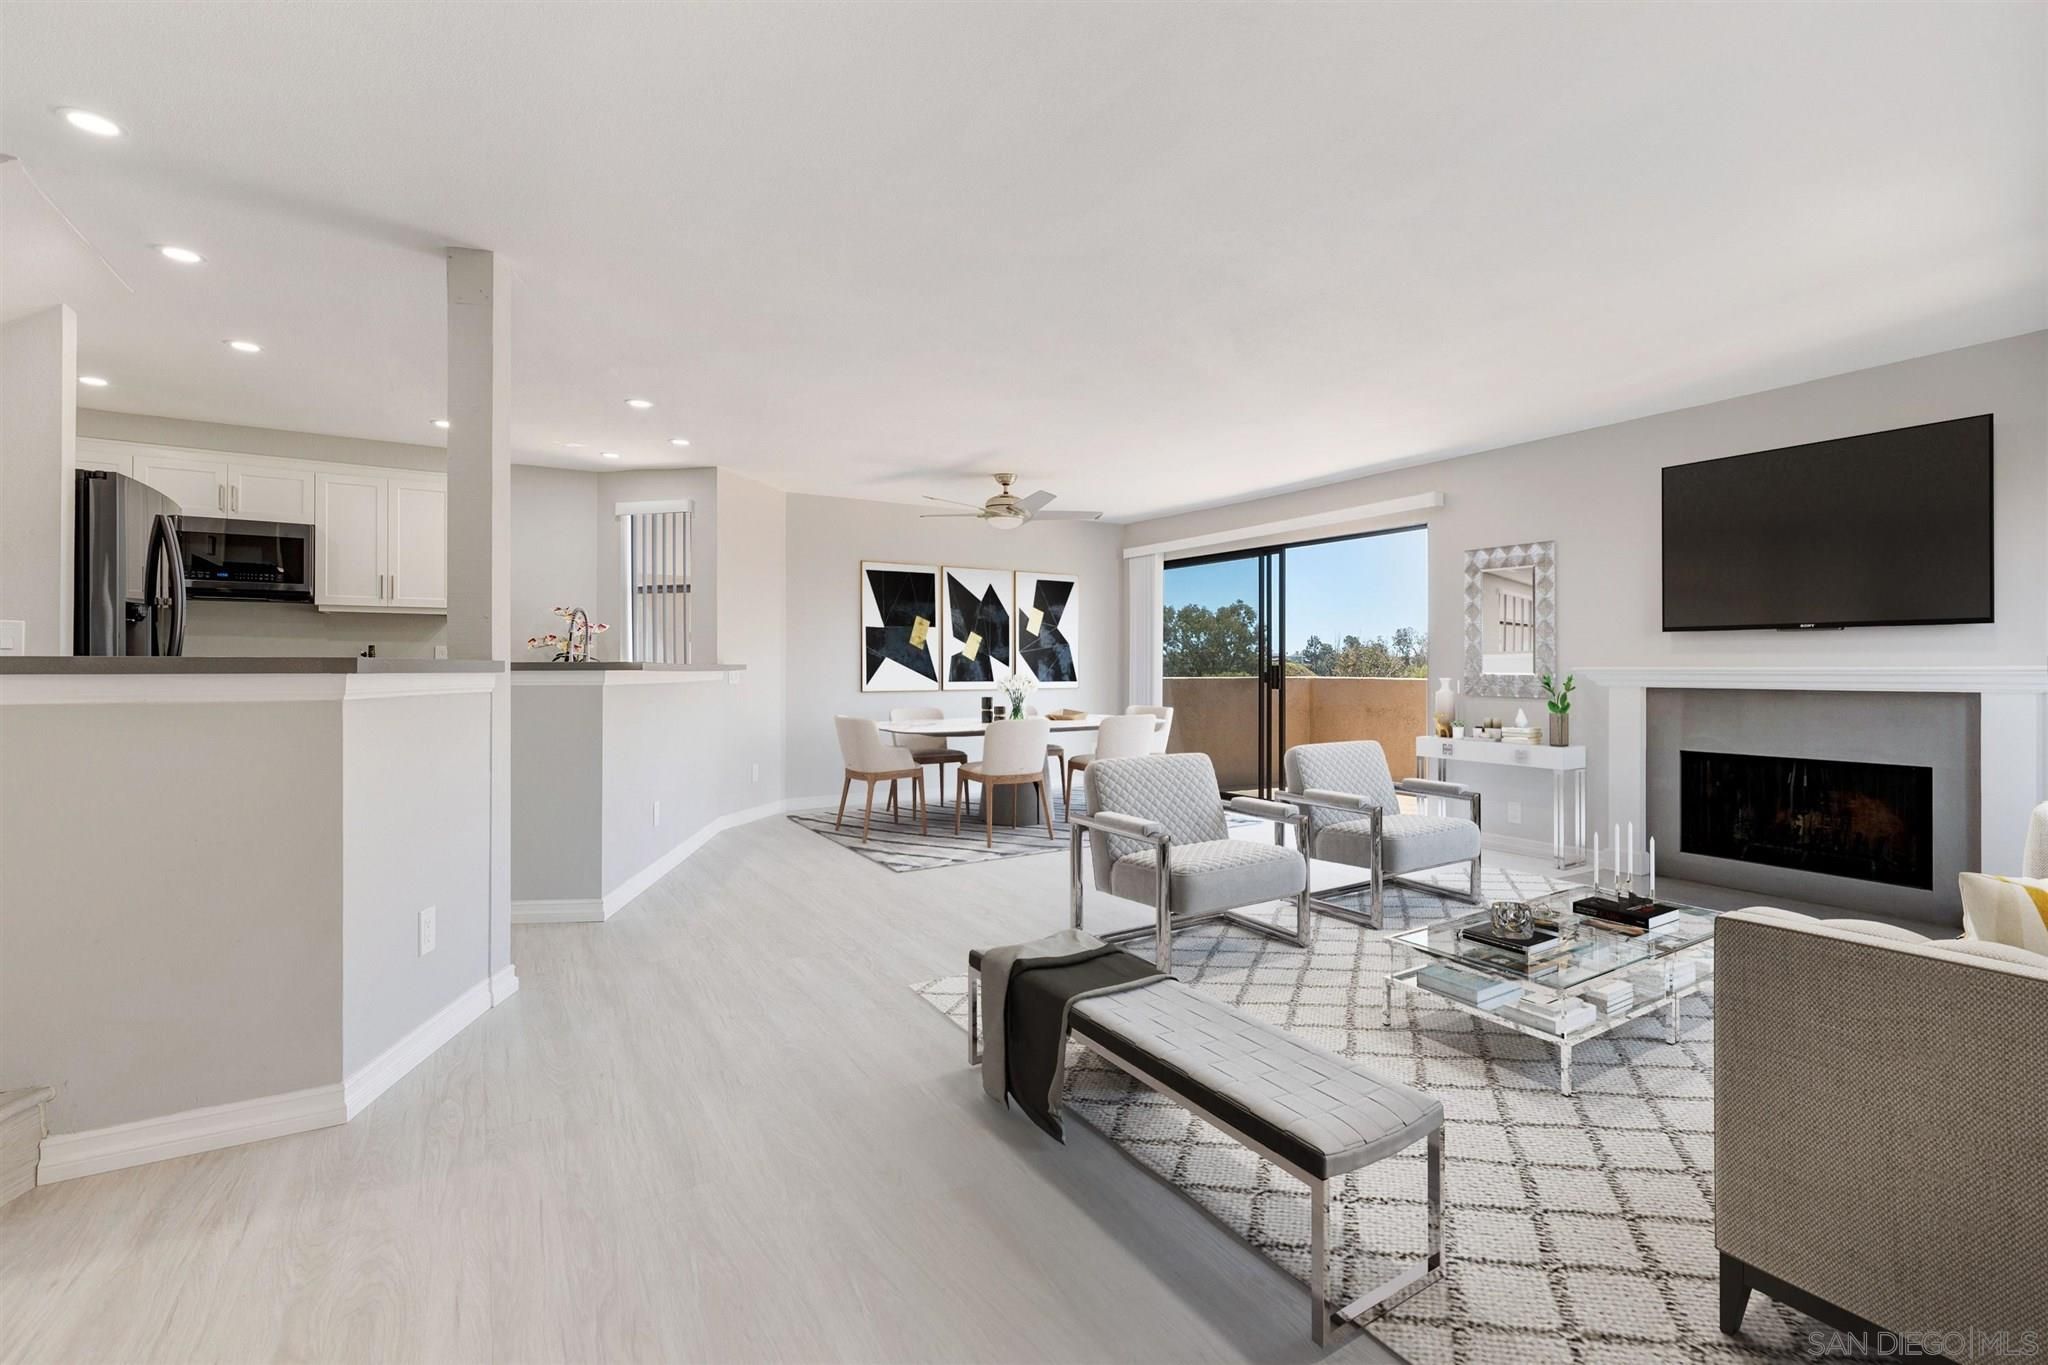 """Beautiful Turnkey End Unit Townhome with Canyon Views @ Woodlands South! Two South-Facing Balconies offer both sunrises and sunsets. Attached Oversized Garage with Built-In Cabinets & Workbench. With only 1 shared wall, this unit is located 1 building back from Via Sonoma, giving you privacy, easy exit and plenty of off-street parking. This is the Largest Floorplan (Plan 5 Pelican) with 2 bedrooms plus Study/Master Retreat and 2 1/2 baths. The main floor offers an open floorplan – Large Kitchen with Bar Area, Wet Bar, Dining & Living Rooms, Fireplace, Oversized Balcony and a half-bath. The 2nd floor features: New Railings, the Master Bedroom, an additional Study/Retreat, the 2nd Bedroom and 2 full bathrooms. (SEE SUPPLEMENT)...Kitchen features all Black Stainless Steel Samsung Appliances (Refrigerator with Icemaker/Water Dispenser included), Mission White Cabinets with Brushed Nickel Handles and Soft Close Drawers, Pantry Space, Platinum Gray Quartz Countertops, Kohler Faucet & Stainless Steel Single Bowl Sink and Space for Barstools.  Dining Room has a Casablanca Stealth 54"""" Nickel Fan/Light Fixture with wall control and Sliding Glass Doors to Oversized Balcony. Living Room has a wood burning fireplace that's refaced with matching quartz. The Master offers Vaulted Ceilings, a 2nd Balcony, 3 Mirrored Closet Doors with Built-In Shelves, Dual Sinks and a separate Shower/Toilet Area; 2nd Bedroom offers an en-suite bathroom with Shower/Tub, Mirrored Closet Doors & Built-In Shelves.  All bathrooms feature Broan-Nutone Chroma Comfort Light/Fan with 24 color selections (Energy Star) and Kohler One-Piece Toilets. The two full baths also have a New Tub with Slow Closing Glass Doors. The Master Bathroom has dual Kohler Sinks. The attached direct entrance 2-car oversized garage features built-in cabinets, workbench, laundry hookups with sink, storage space & newer Water Heater. Complete Remodel includes Waterproof Commercial Grade Laminate flooring throughout (except for the 2"""